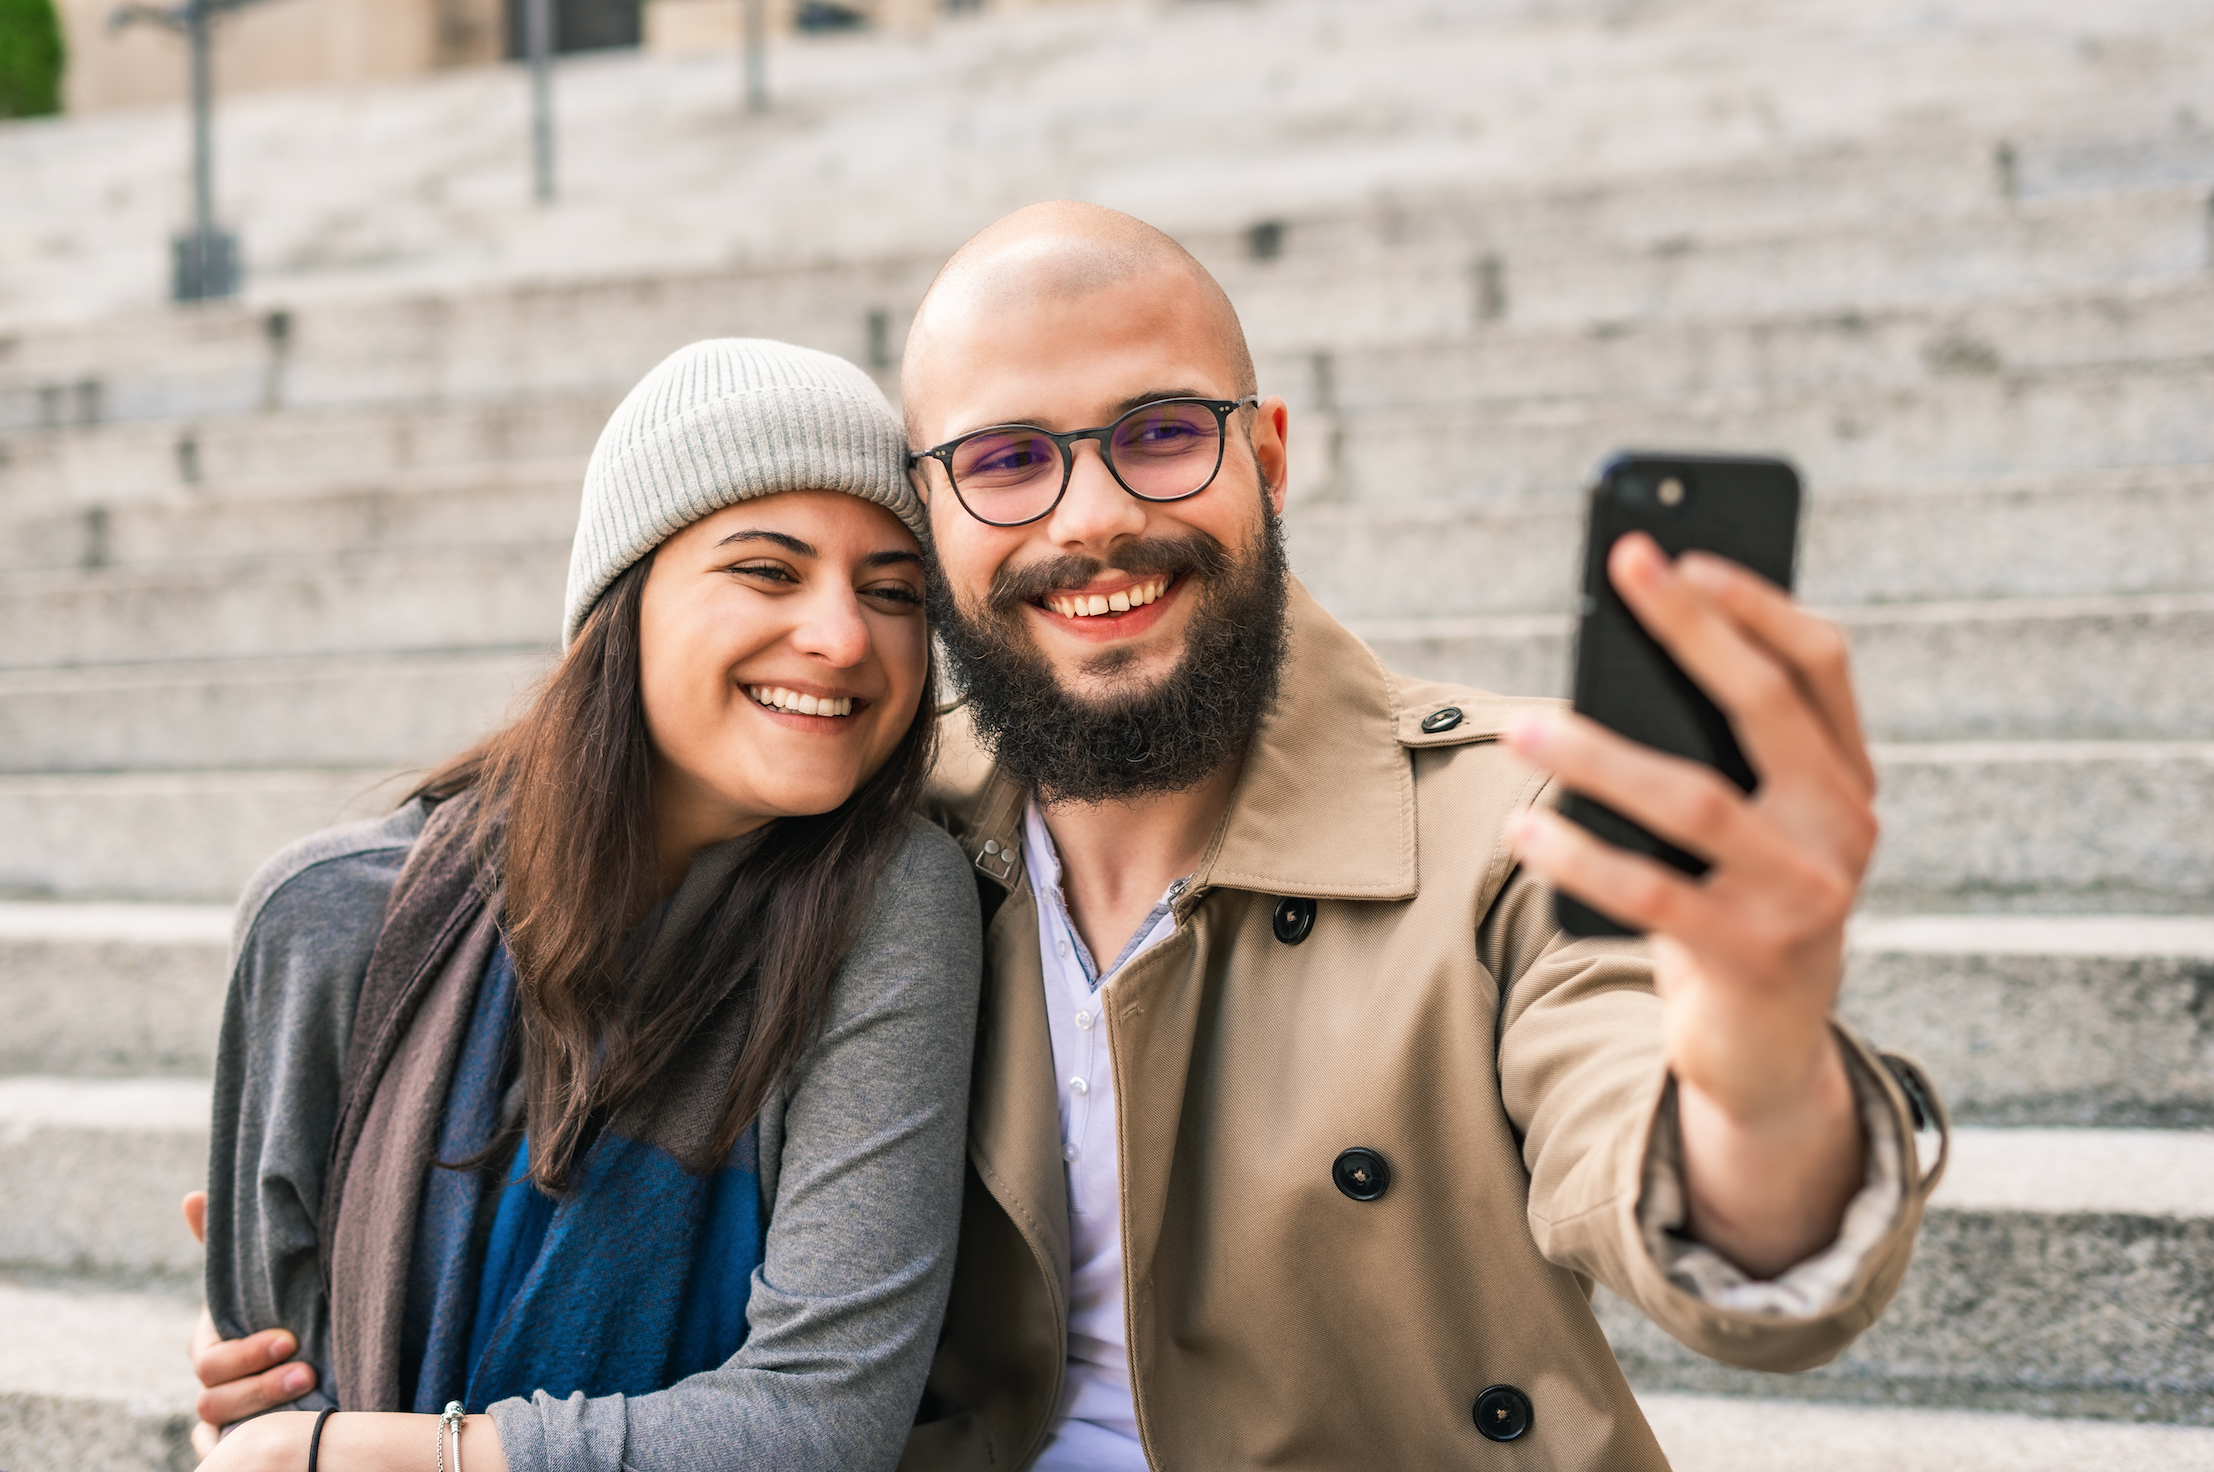 Smiling young couple taking selfie with smartphone